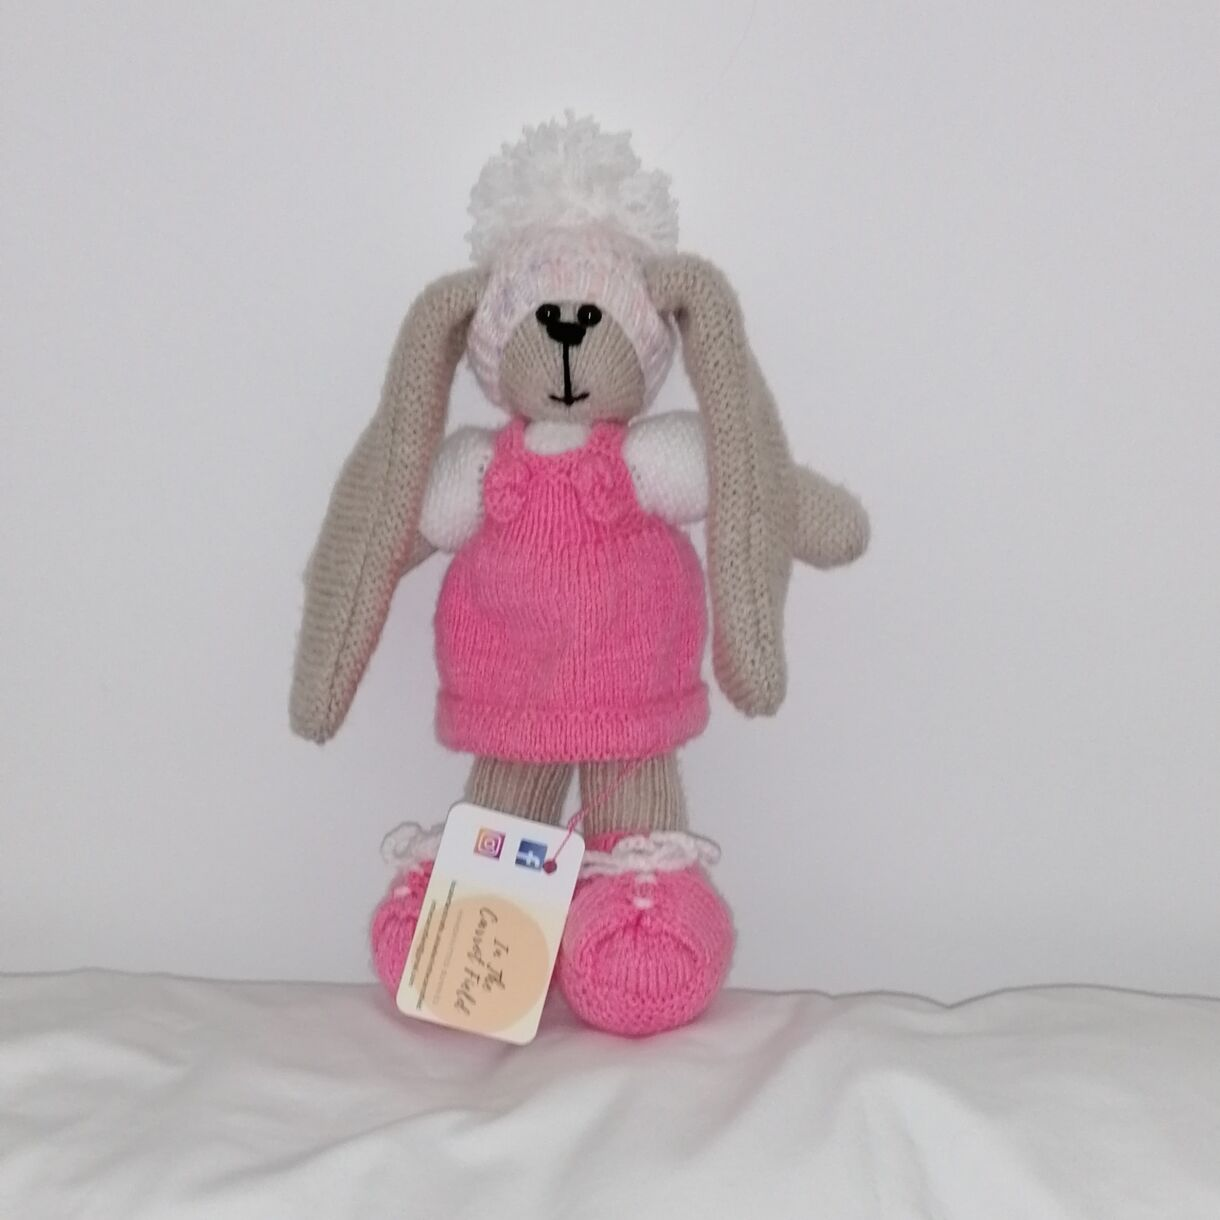 Beautifully Hand Knitted Bunny Girl in a Fondant Pink Pinafore and Shoes and a Co-ordinated Hat and Hooded Jacket